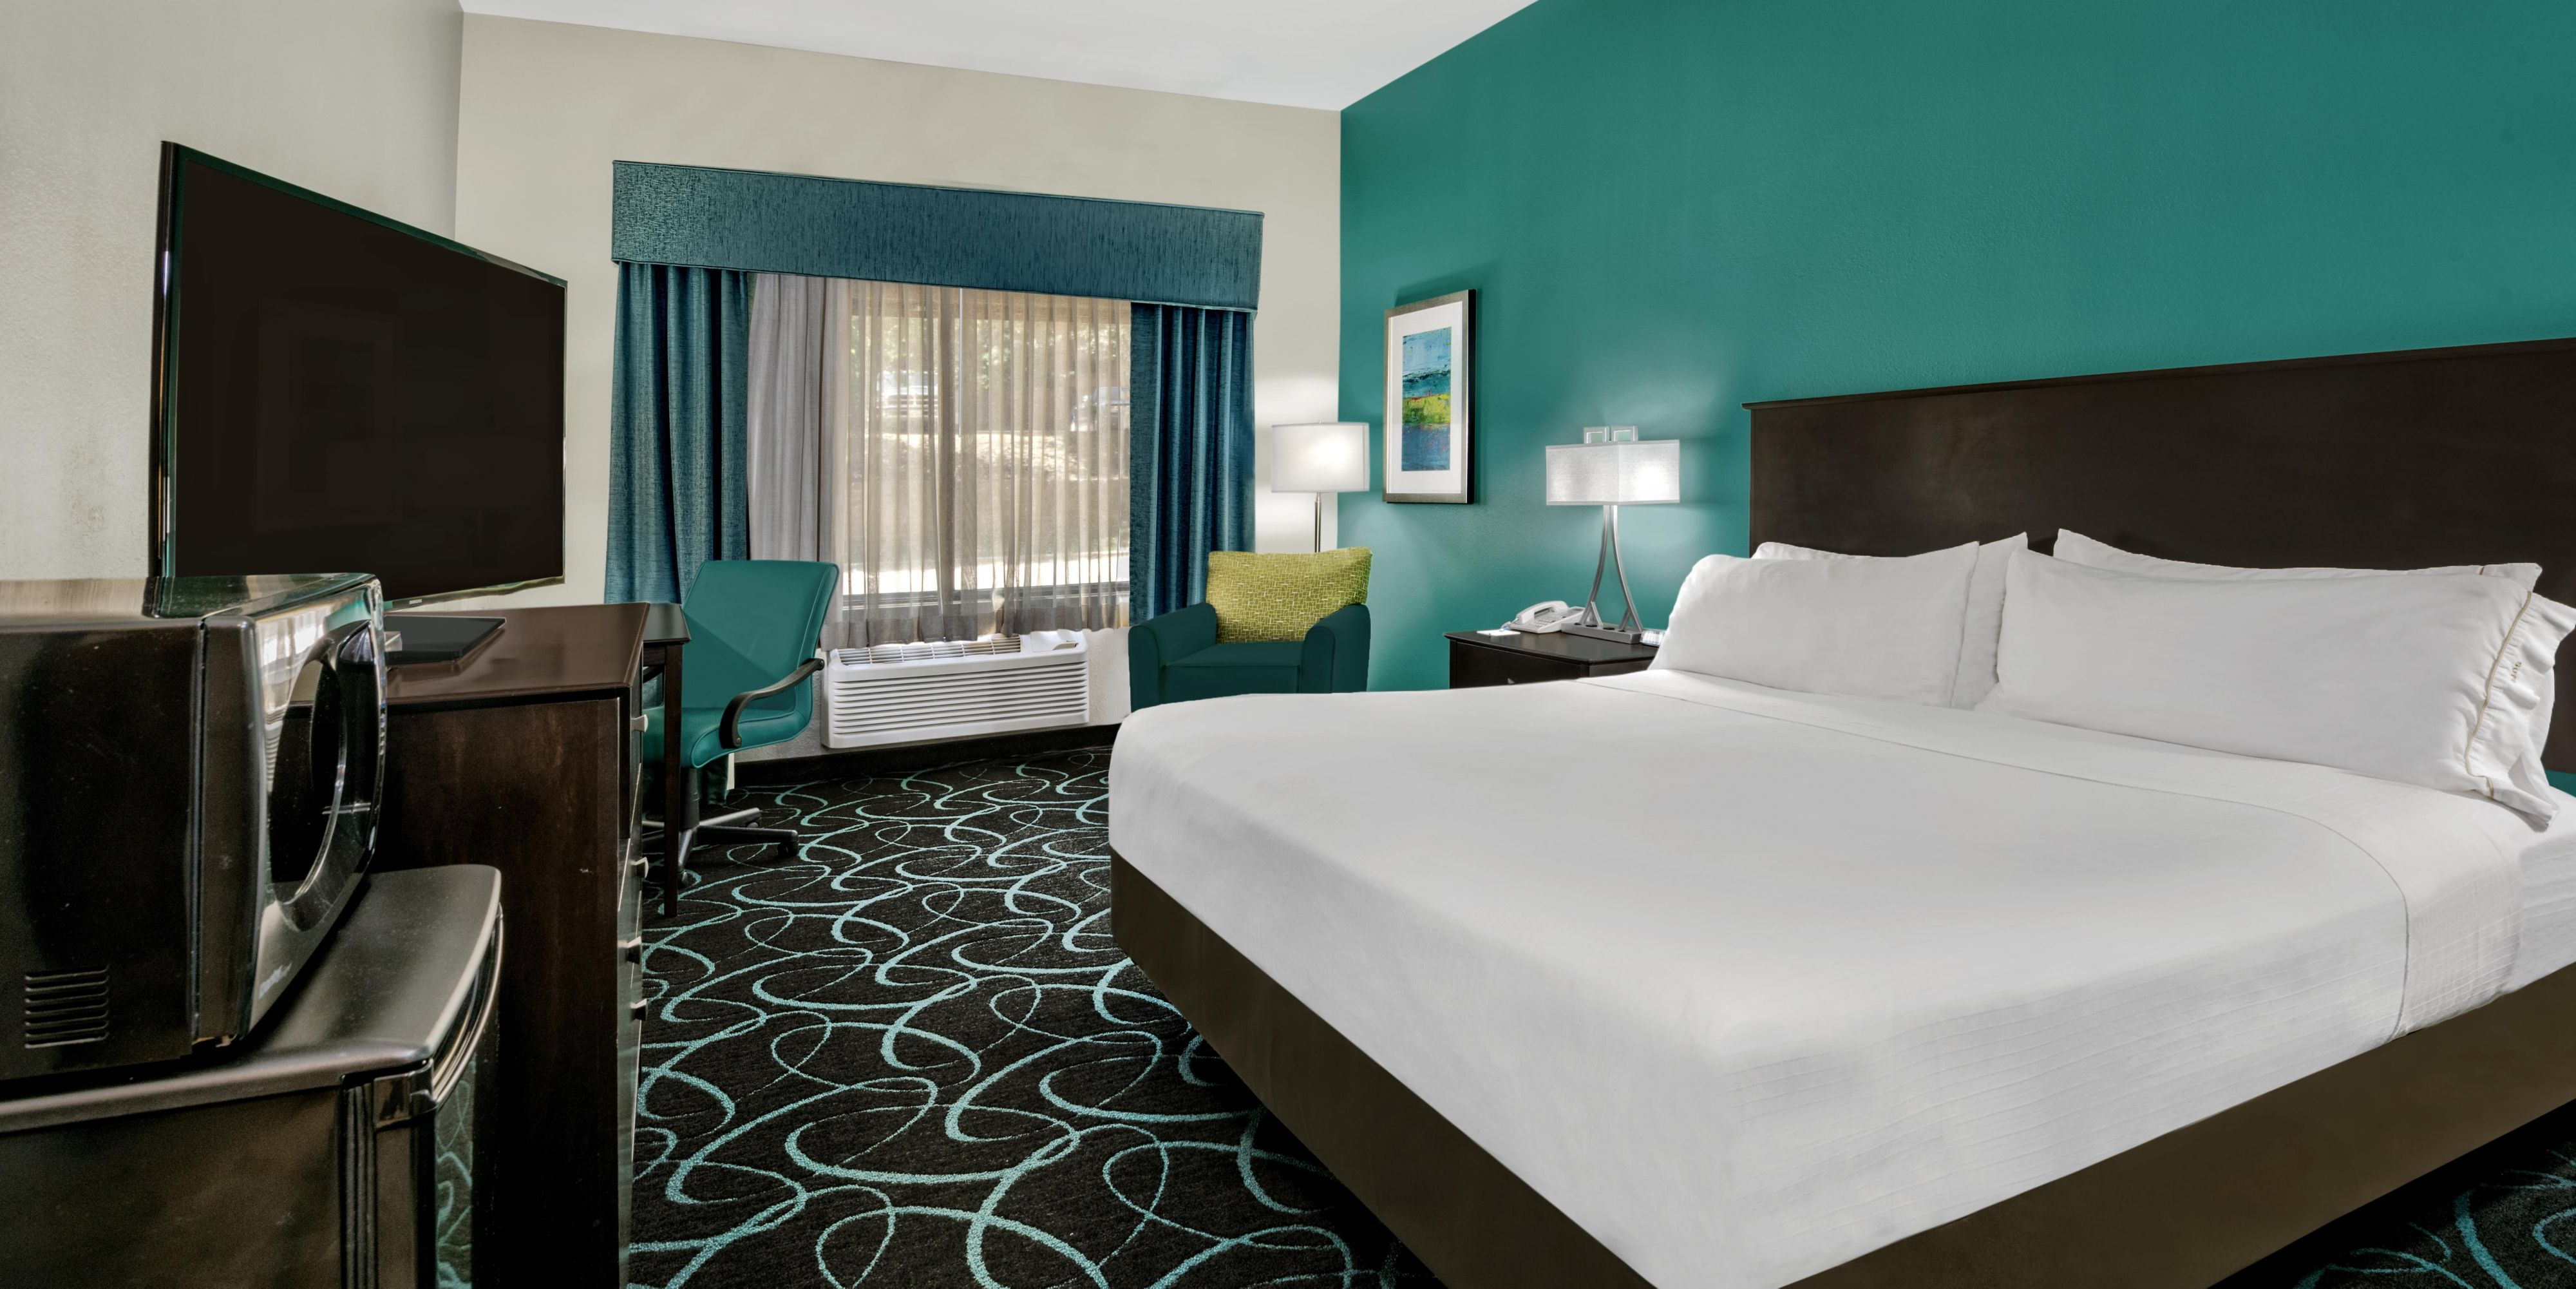 holiday inn express & suites fort worth southwest (i-20) hotelihg